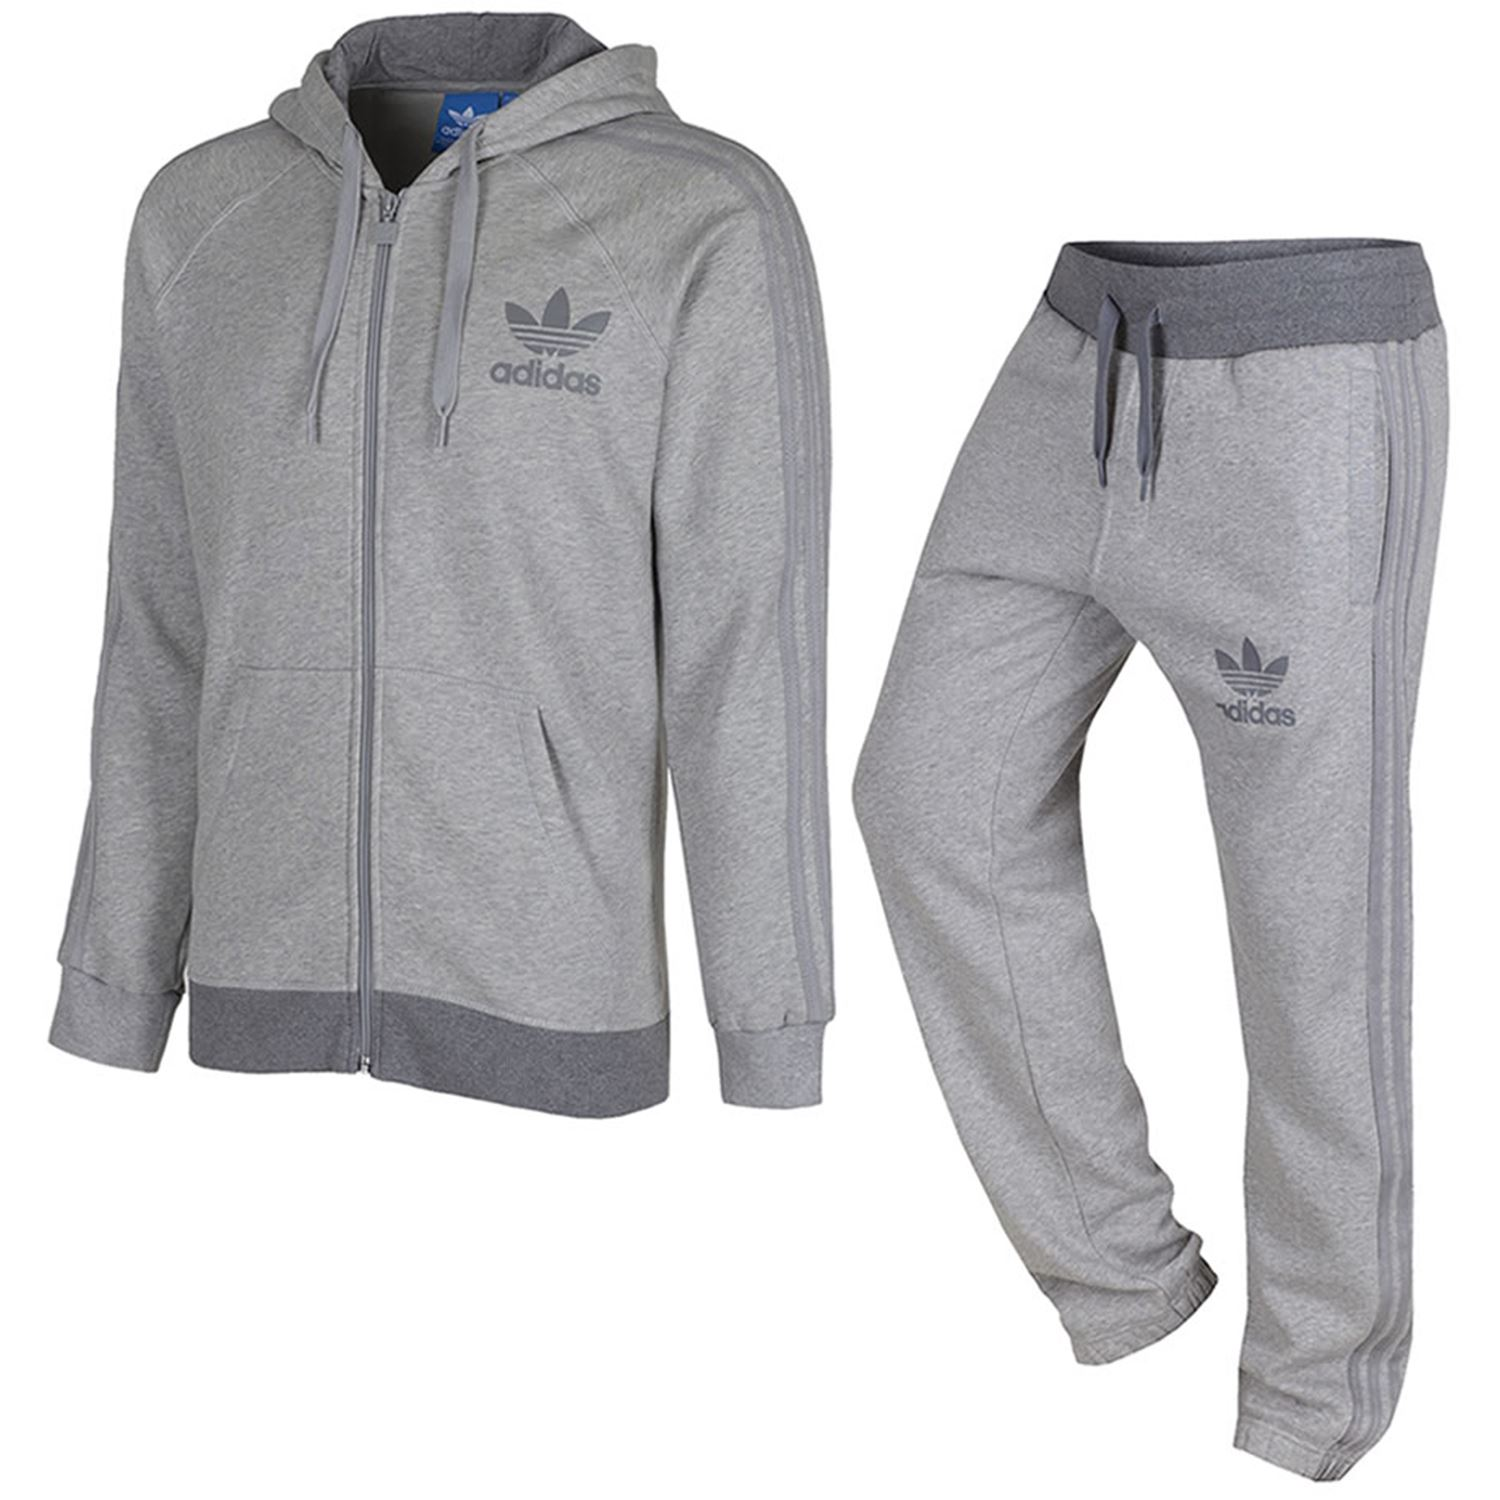 adidas originals men 39 s spo full tracksuit navy grey black. Black Bedroom Furniture Sets. Home Design Ideas